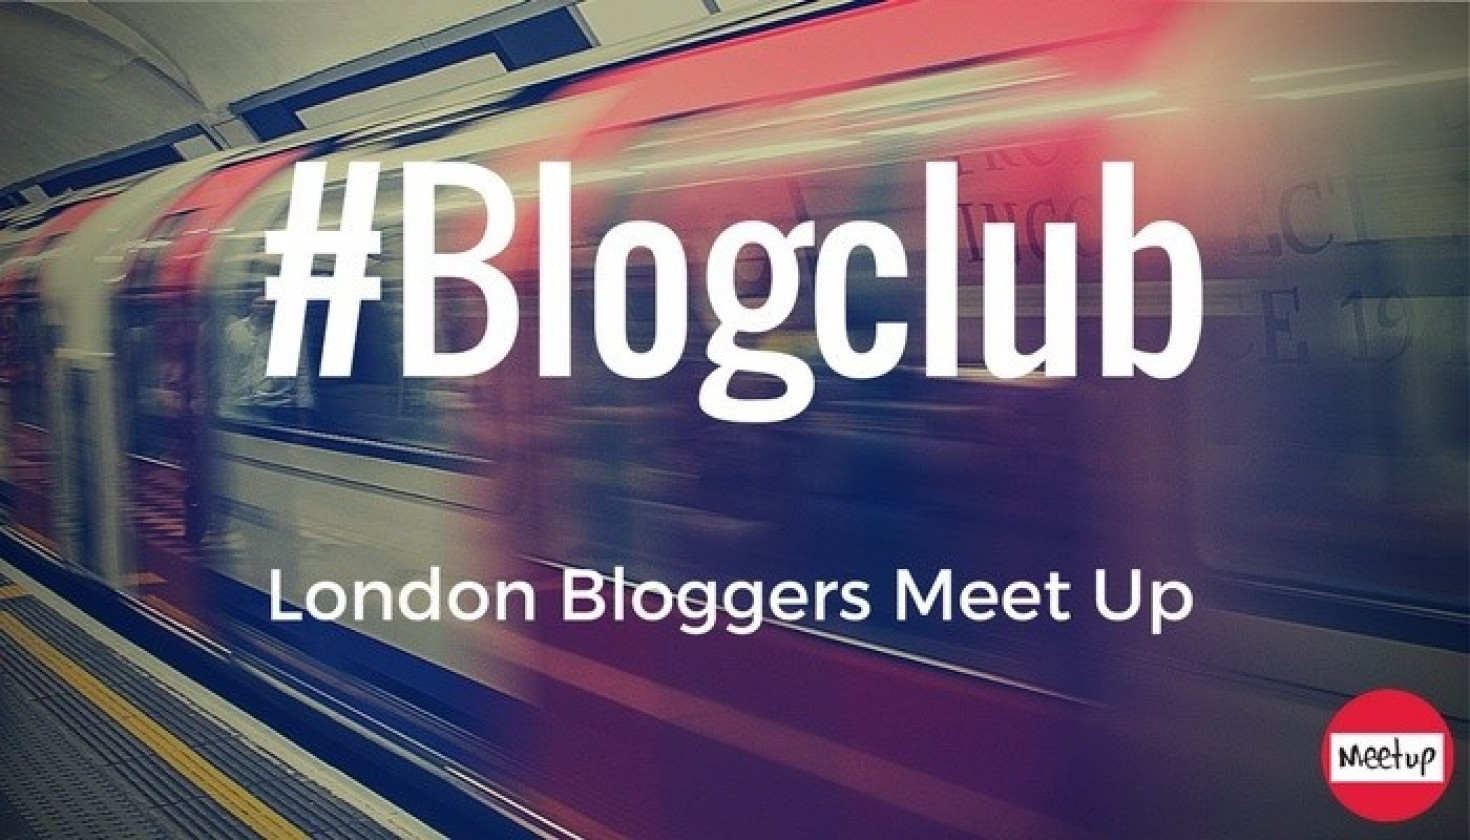 London Bloggers Meetup - Wednesday